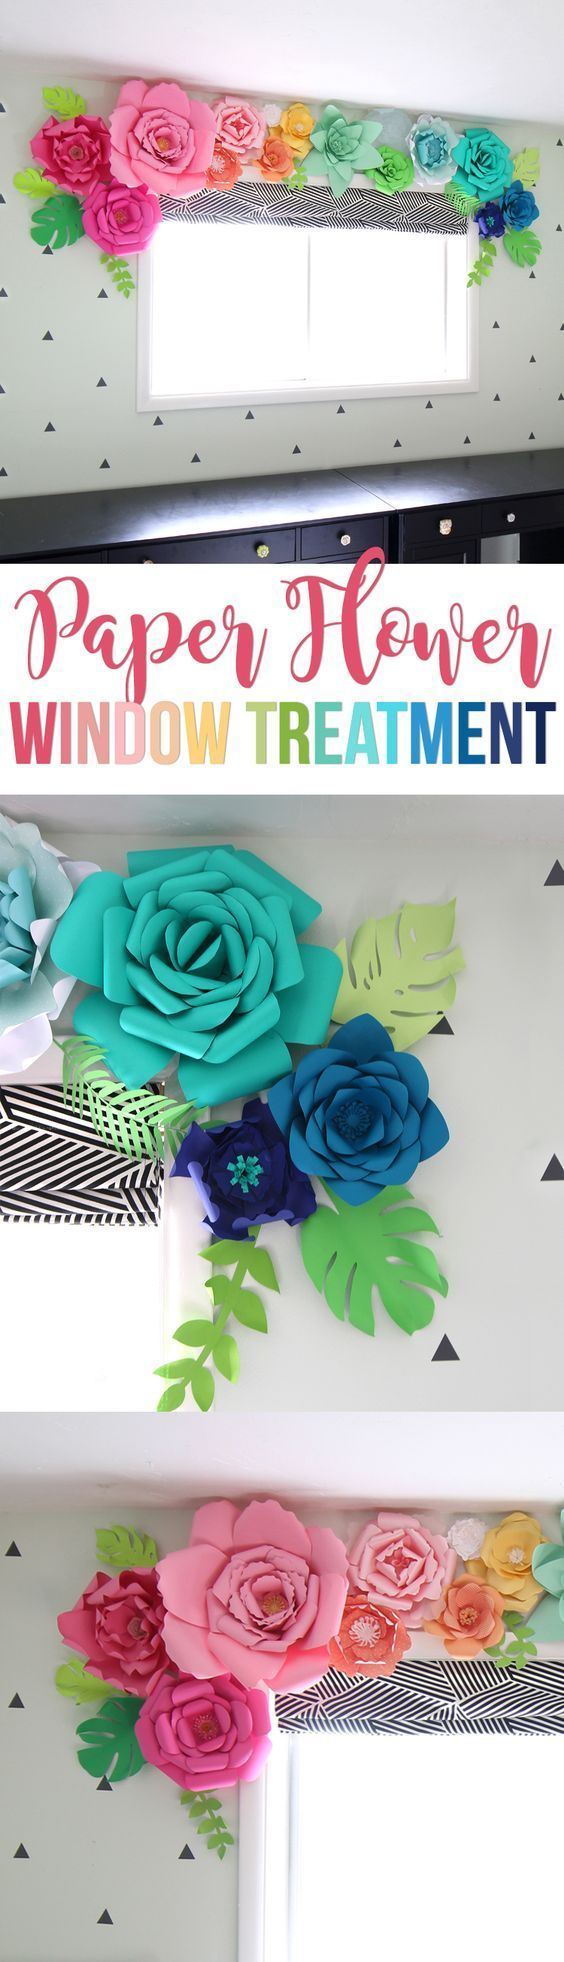 Create a whimsical, colorful and unique window treatment using giant paper flowers. So cute for a little girls room! Free paper flower templates and Silhouette cut file. #hobbylobbymade #sponsored